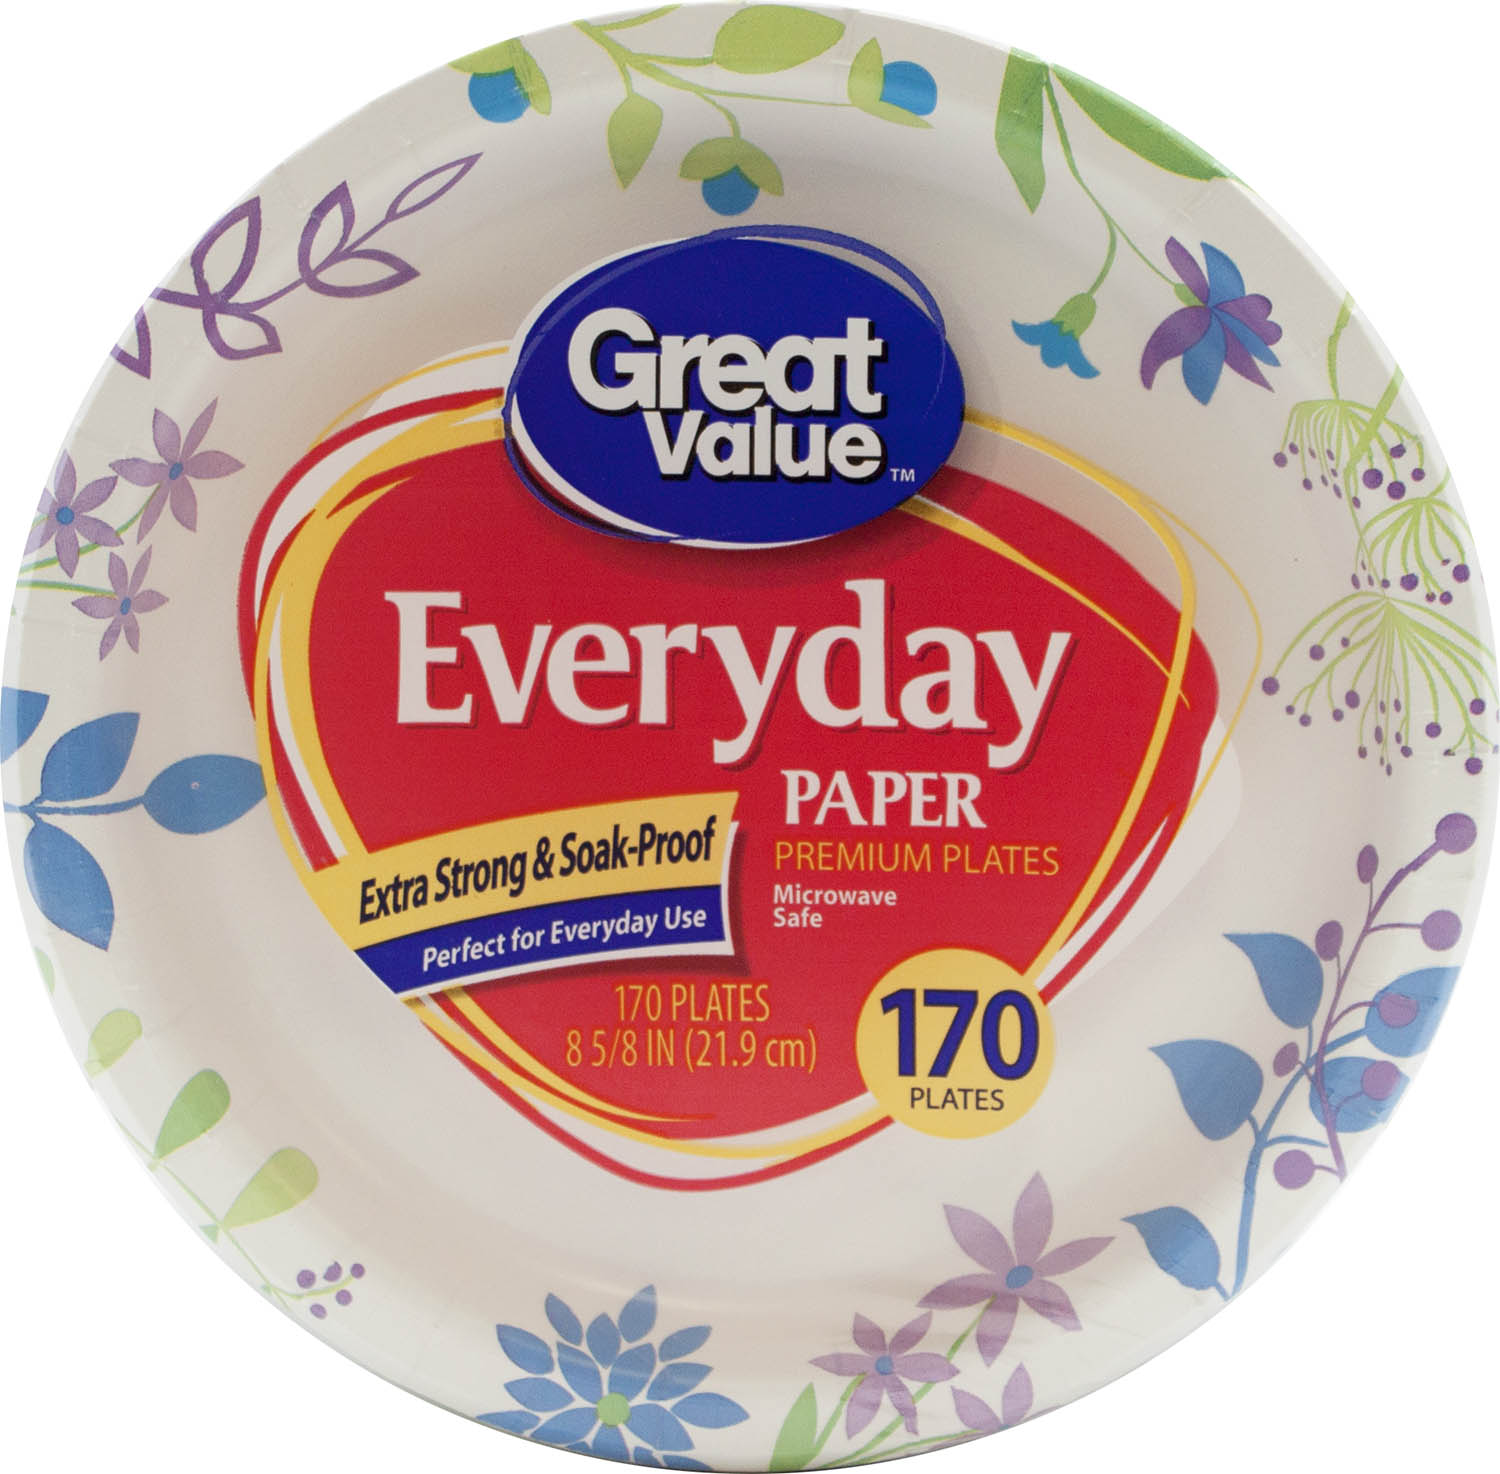 "Great Value Everyday Premium Paper Plates, 8 5/8"", 170 Count"